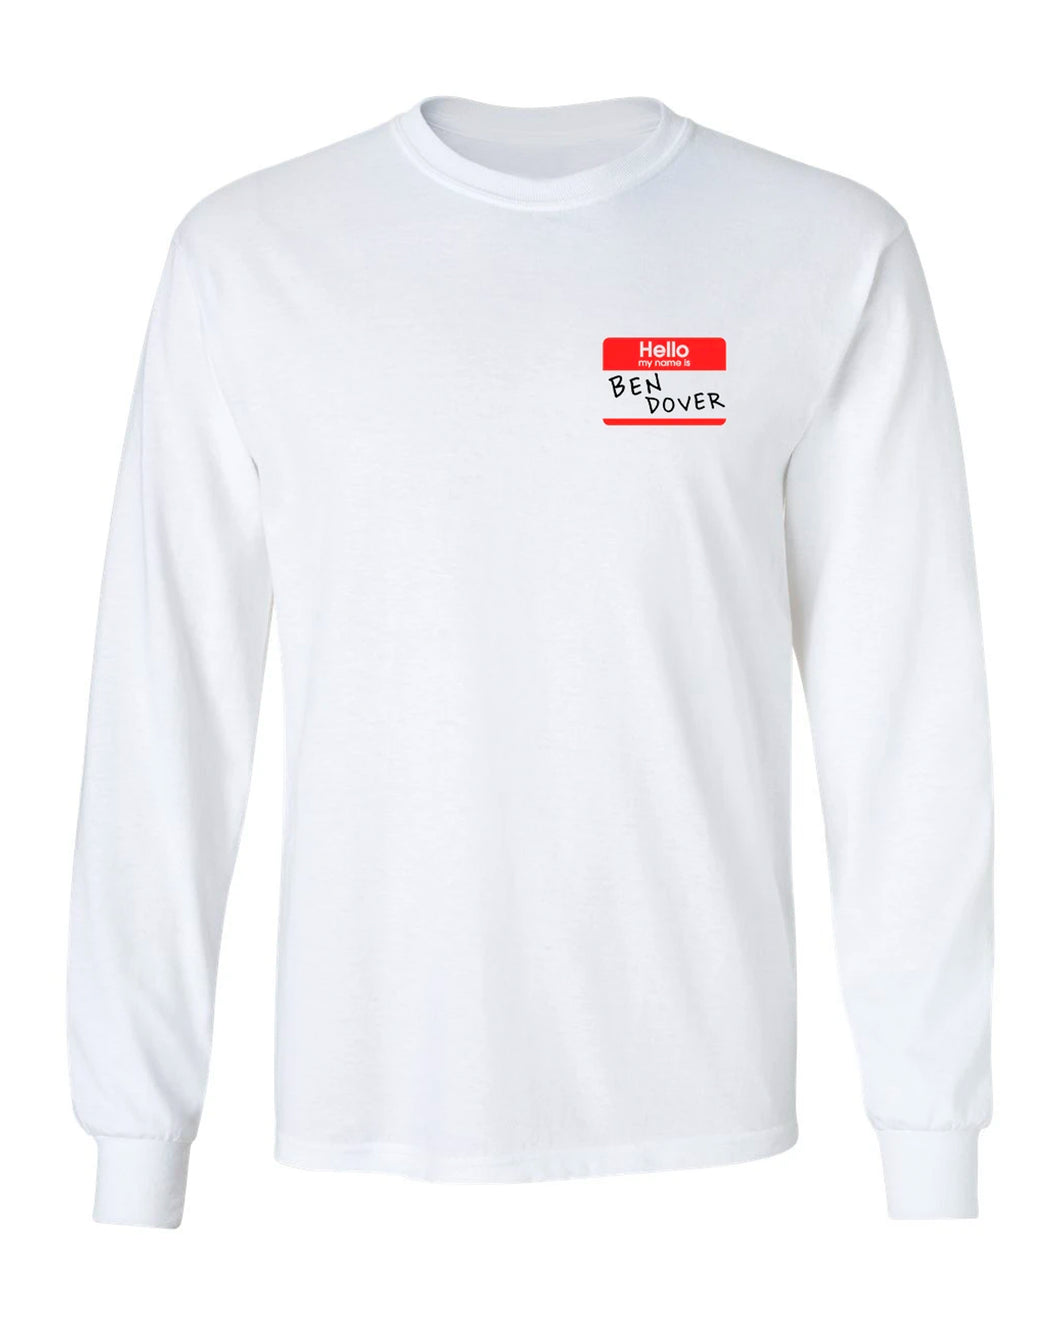 Ben Dover White Long Sleeve